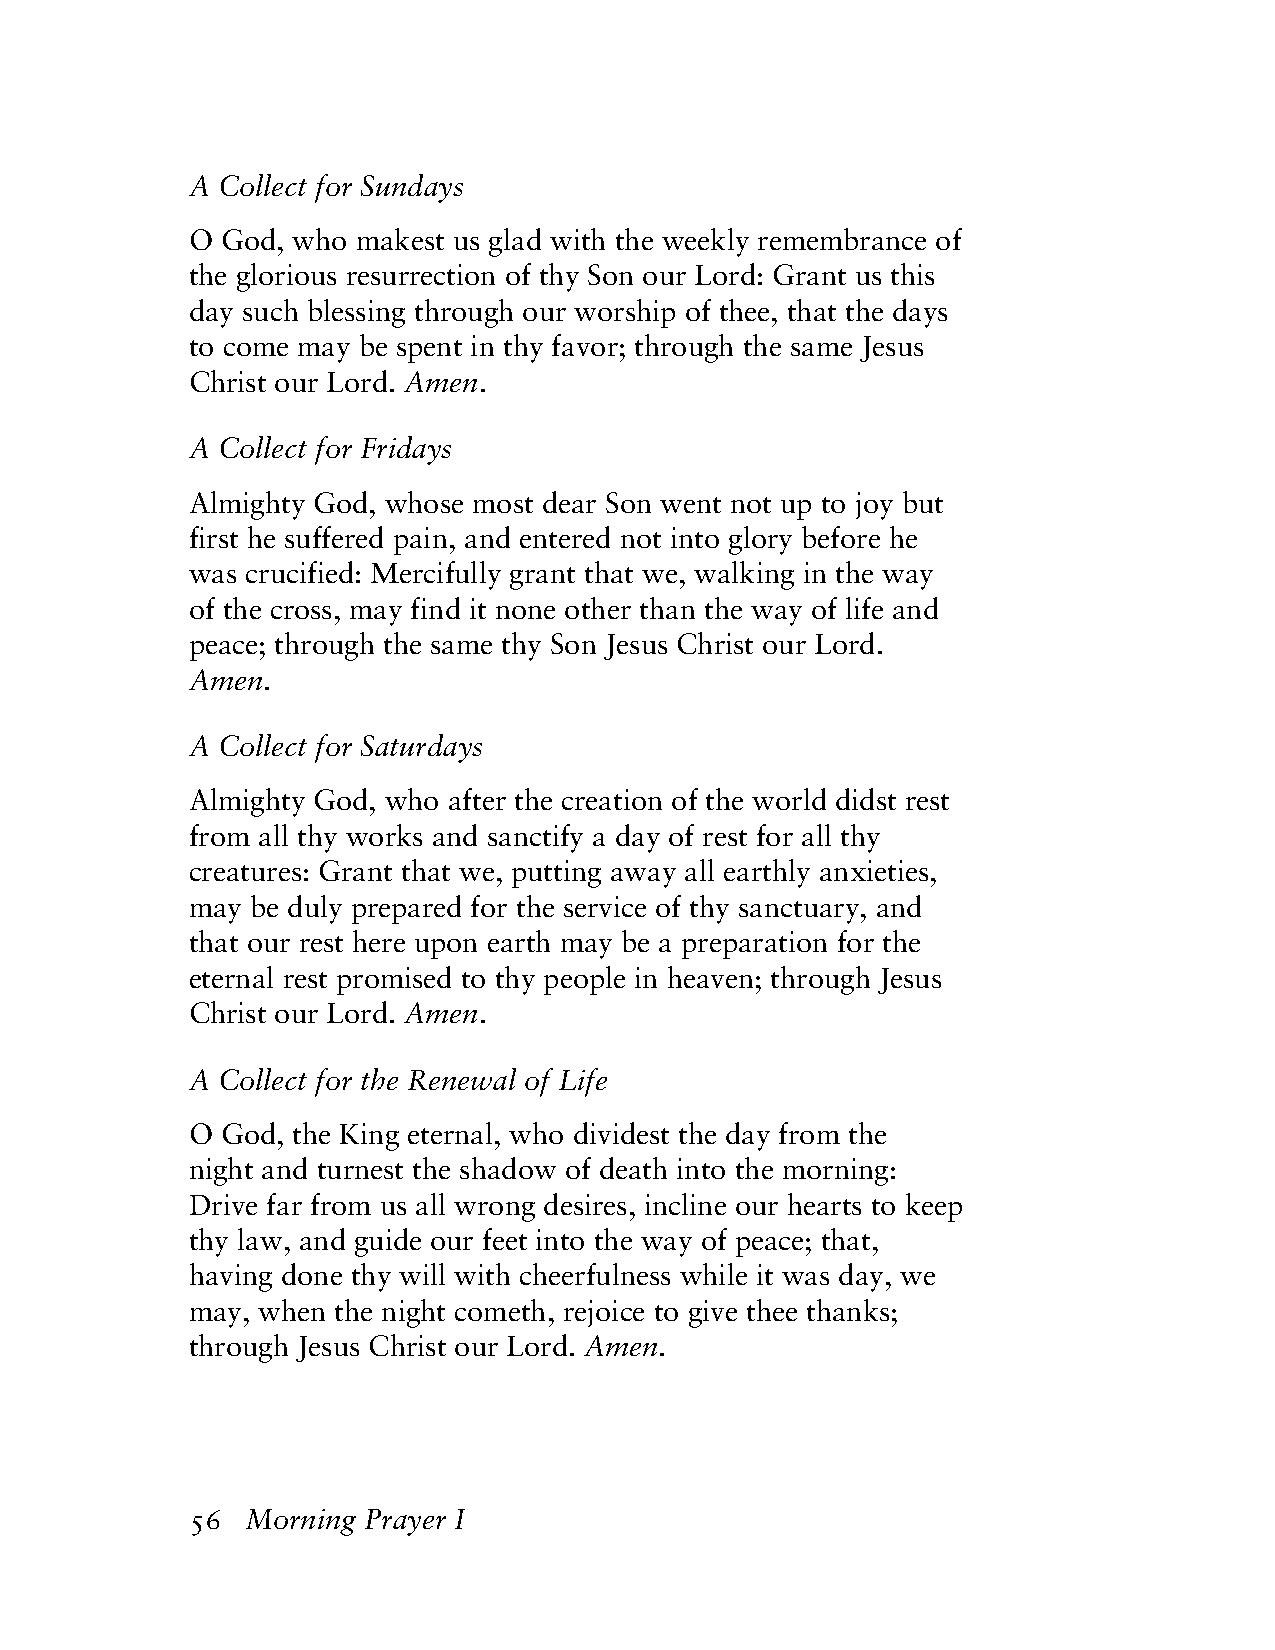 page book of common prayer tec 1979 pdf 56 wikisource the free